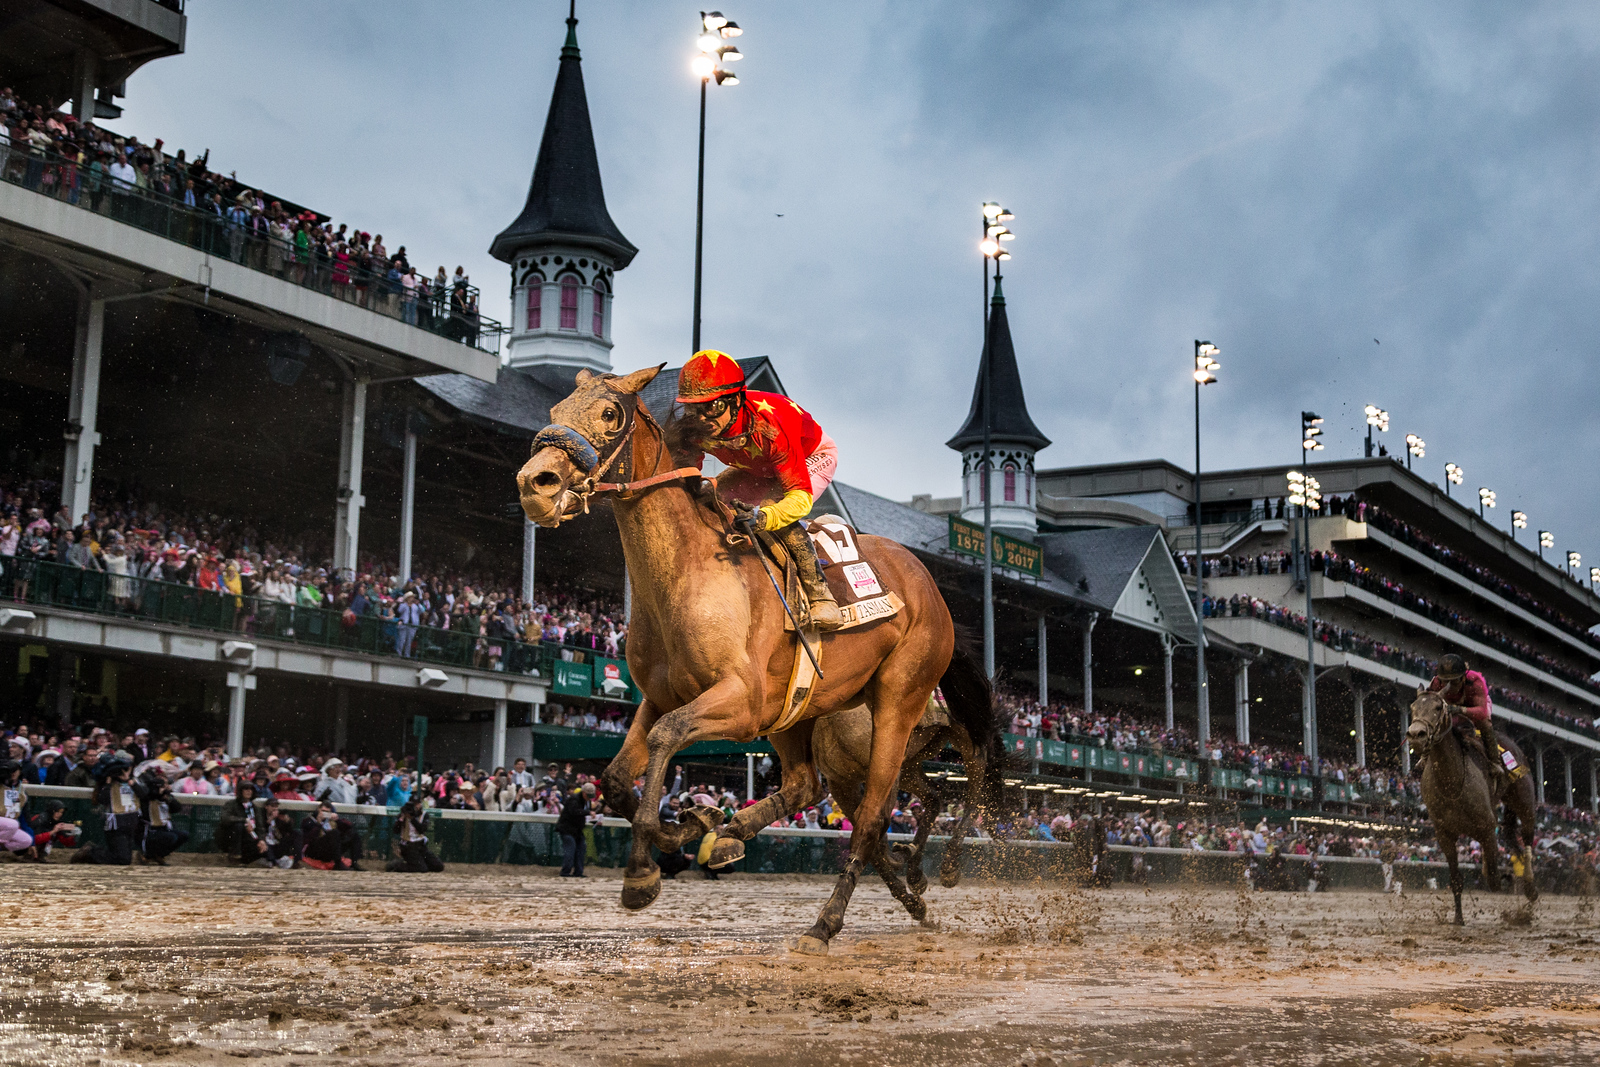 Abel Tasman (Quality Road) wins the Kentucky Oaks at Churchill Downs on 5.5.2017. Mike Smith up, Bob Baffert trainer, China Horse Club and Clearsky Farm owners.